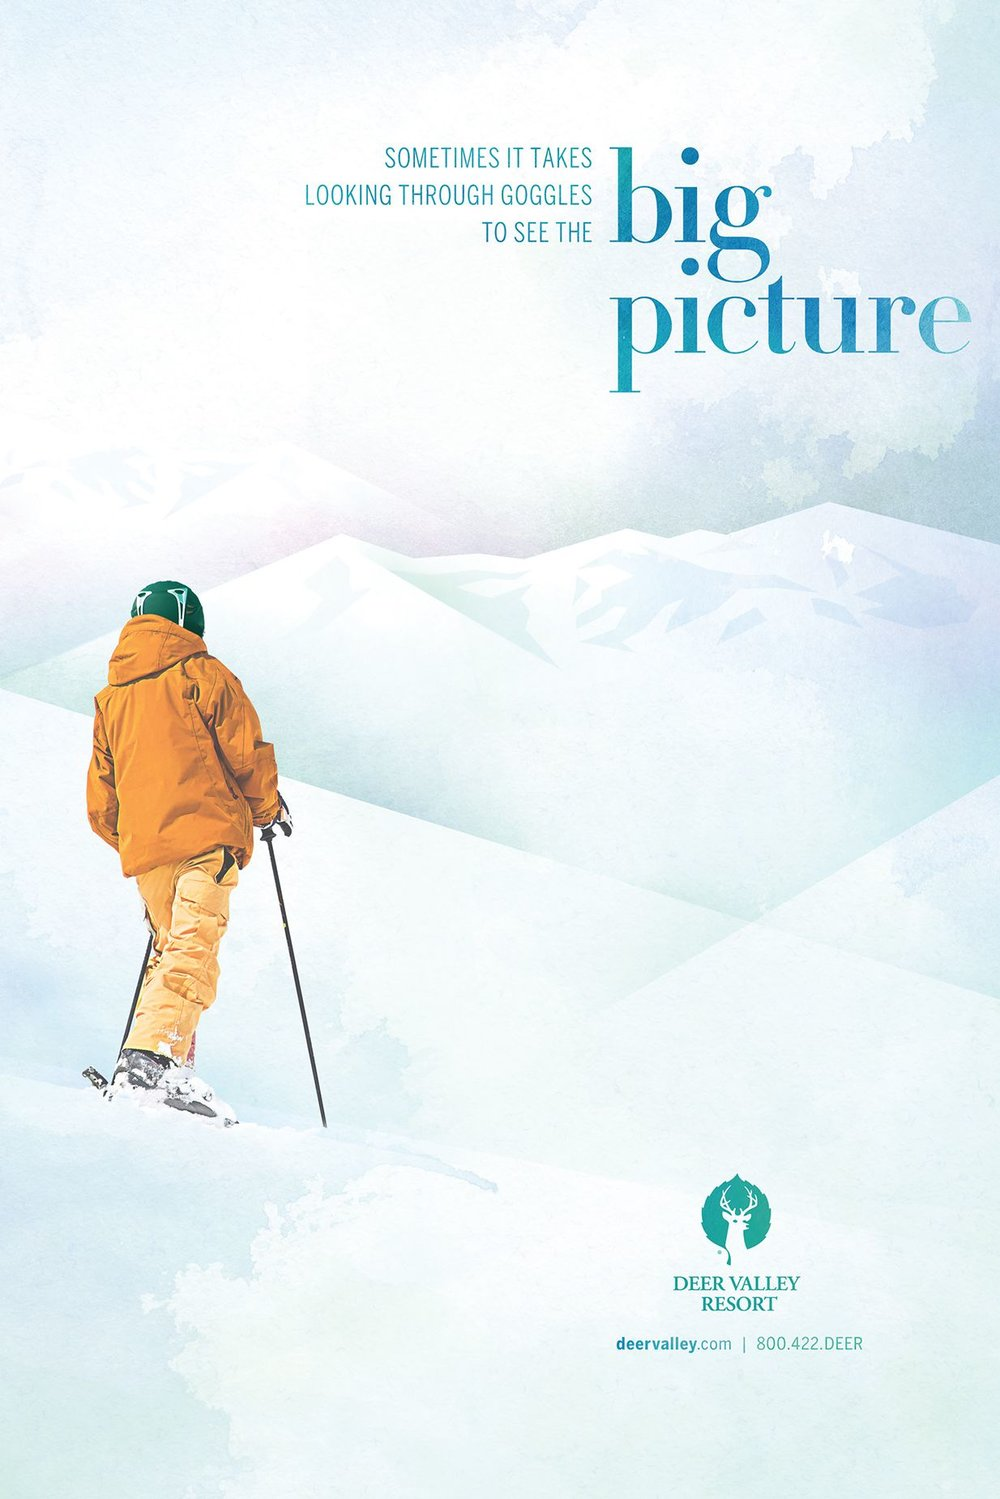 Deer Valley Big Picture Advertisement with skier